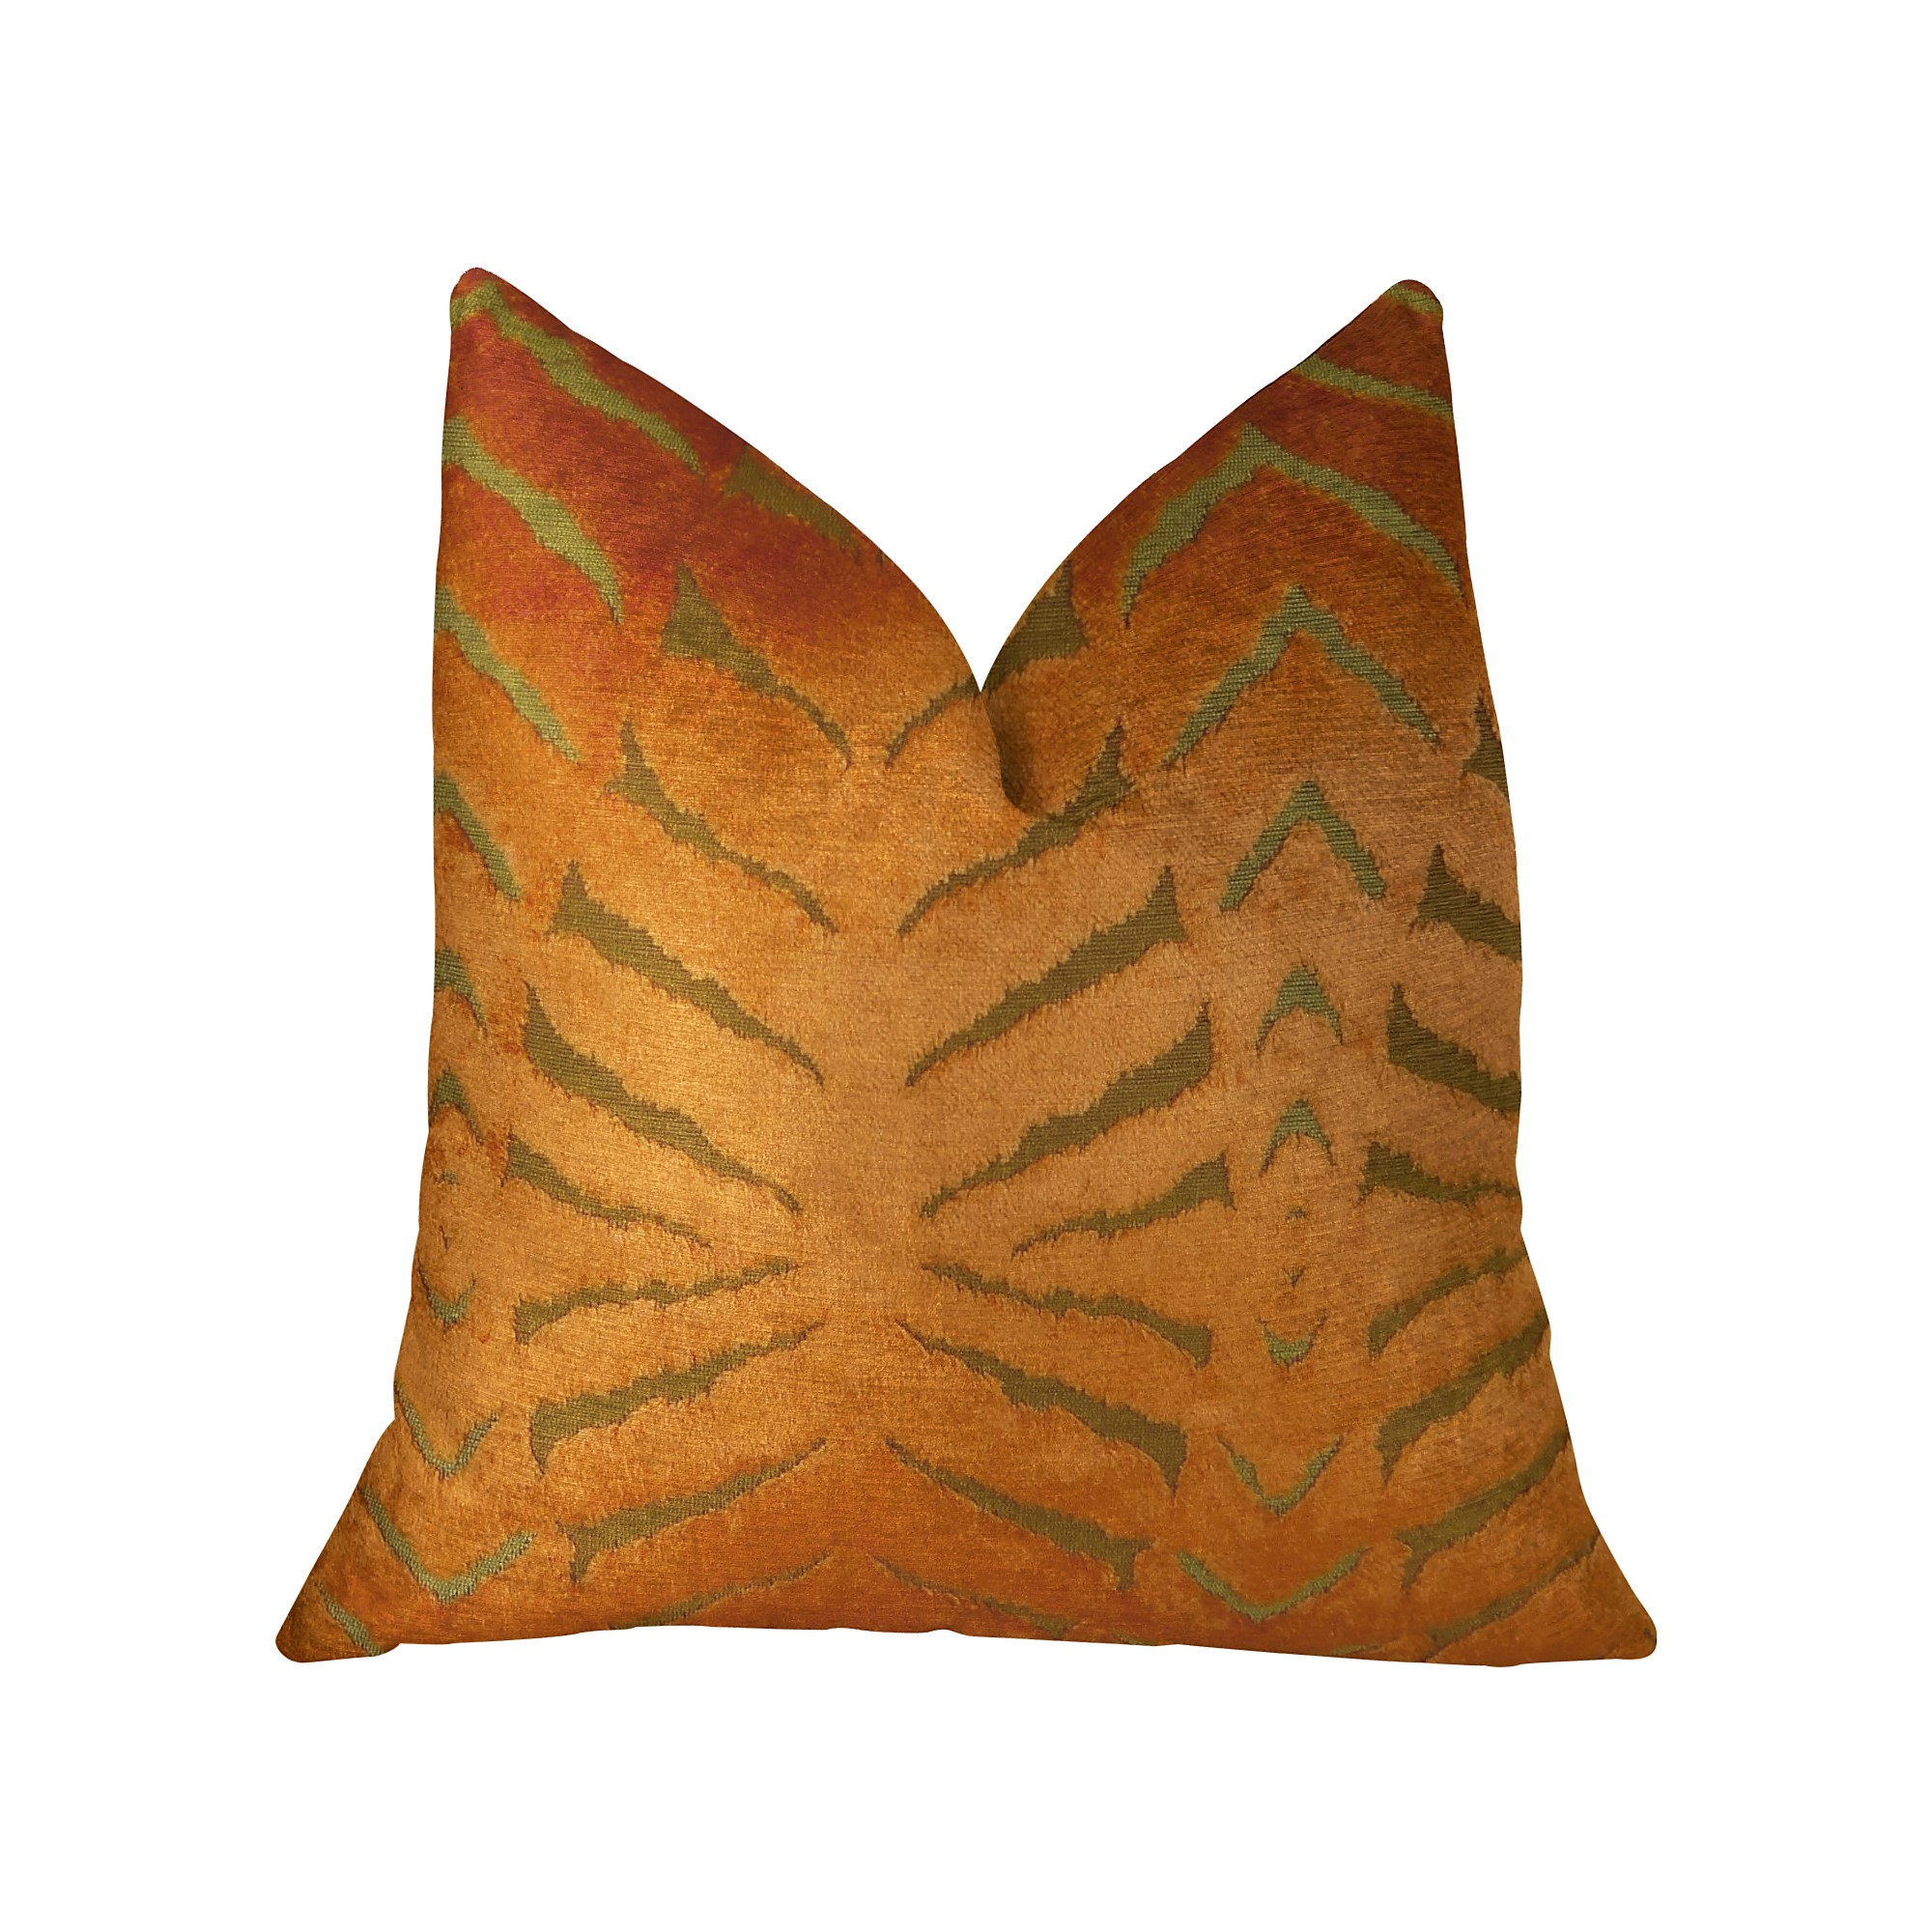 Plutus Tangerine Bliss Orange Handmade Luxury Pillow